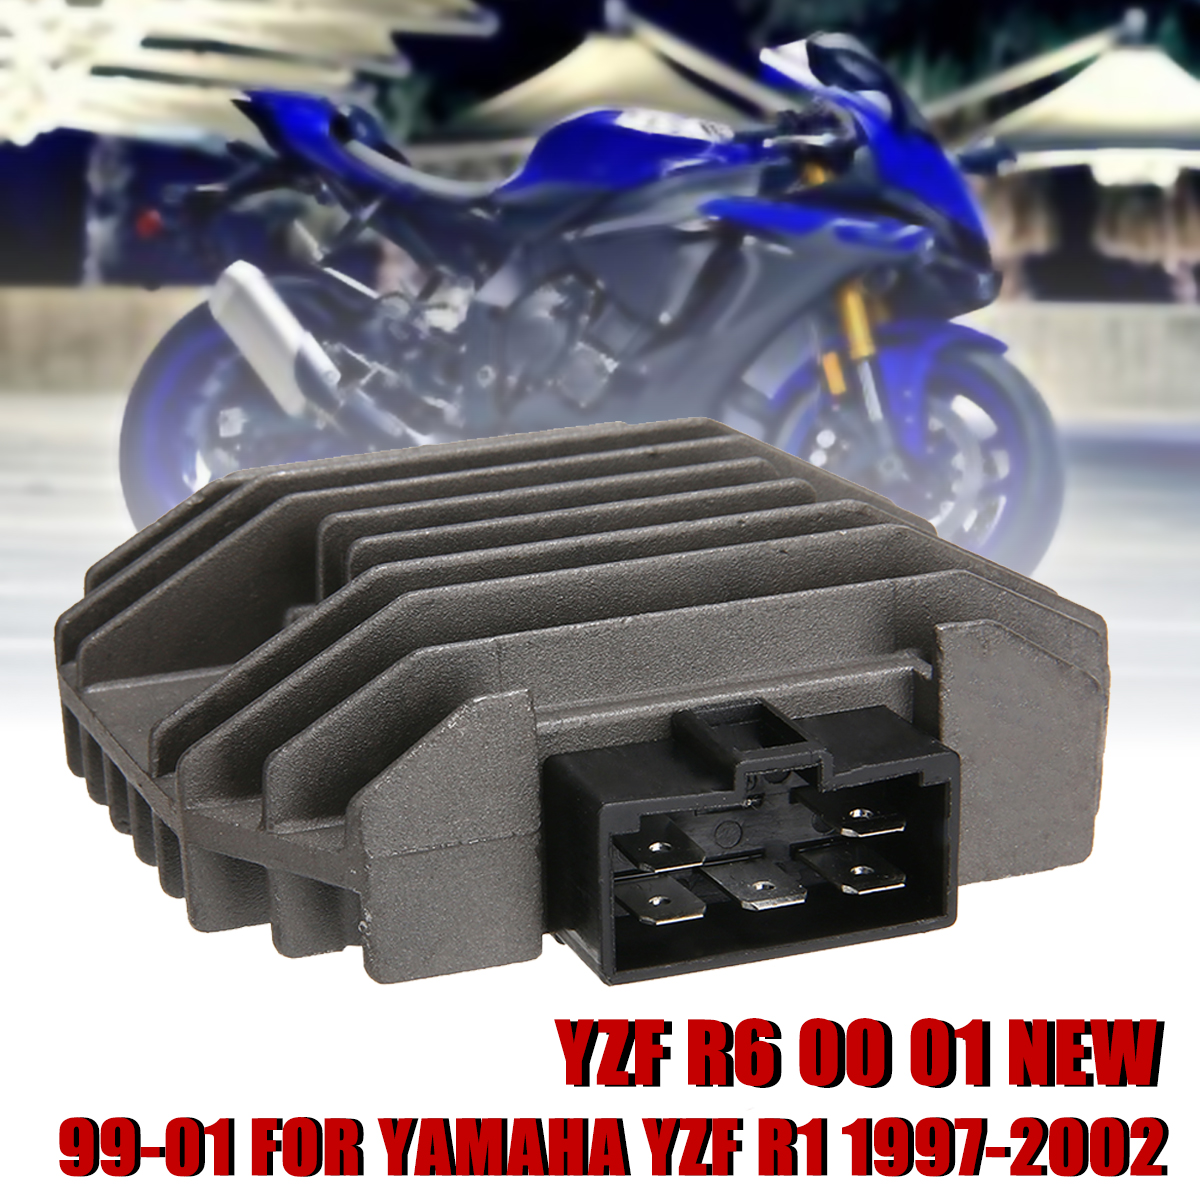 Fine Us 12 04 30 Off Motorcycle Parts 1Pc Professional Replacement Regulator Voltage Rectifier For Yamaha Yzf R1 1999 2001 Yzf R6 1997 2002 In Motorbike Gmtry Best Dining Table And Chair Ideas Images Gmtryco